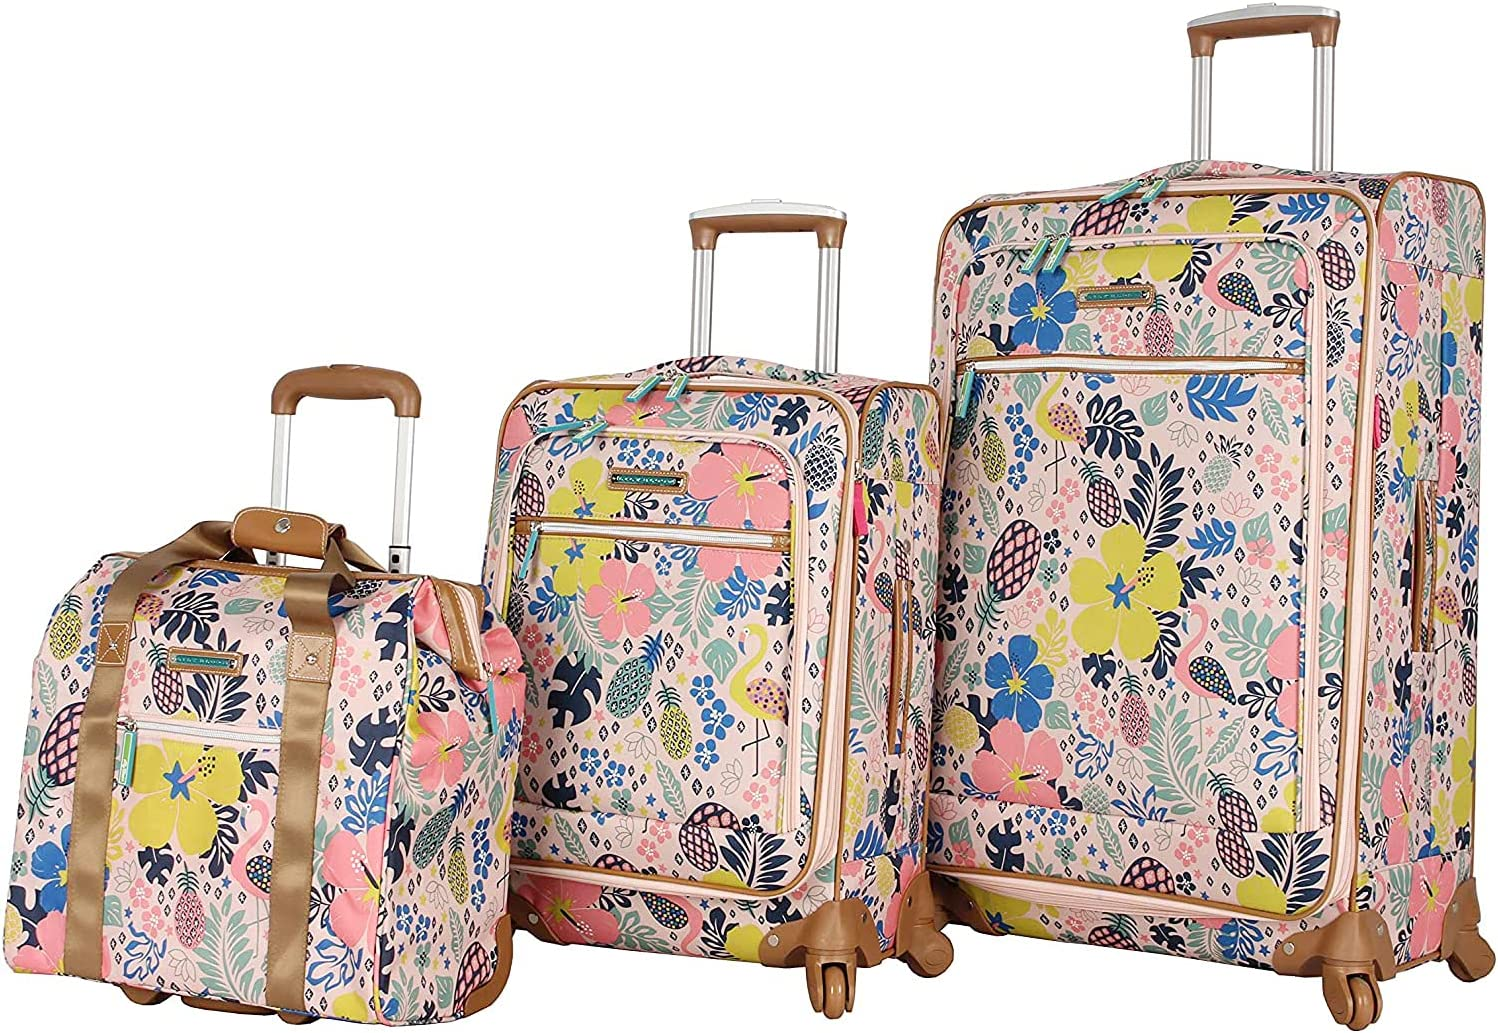 Lily OFFicial shop Max 55% OFF Bloom Luggage 3 Piece Softside Set Collect Spinner Suitcase